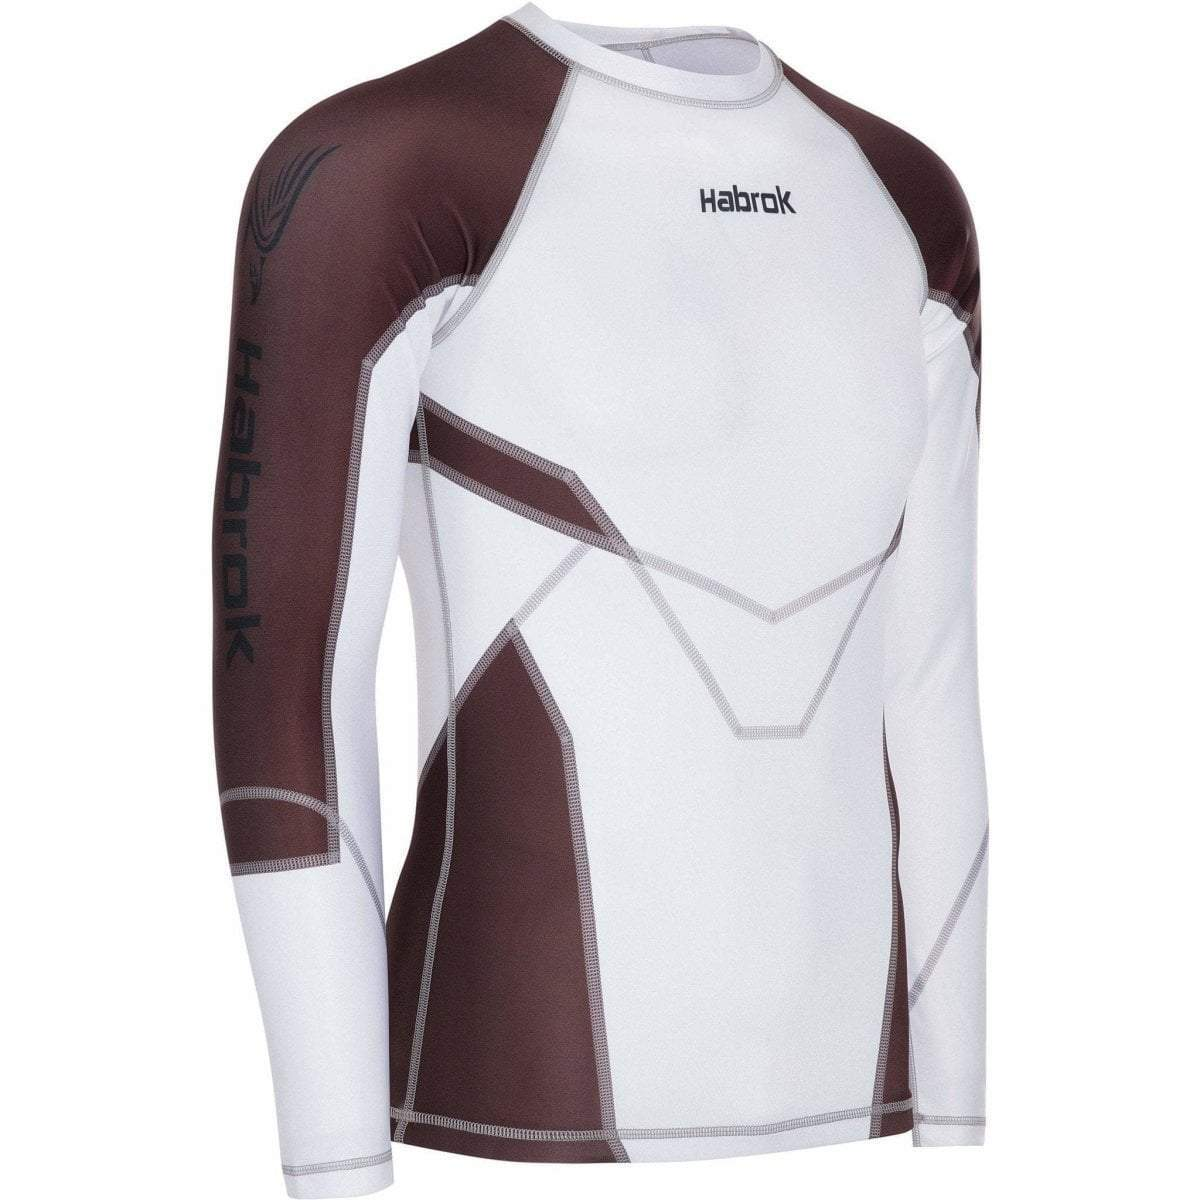 Habrok Rash Guard S / BROWN Transform 2.5 | Rash Guard | Men